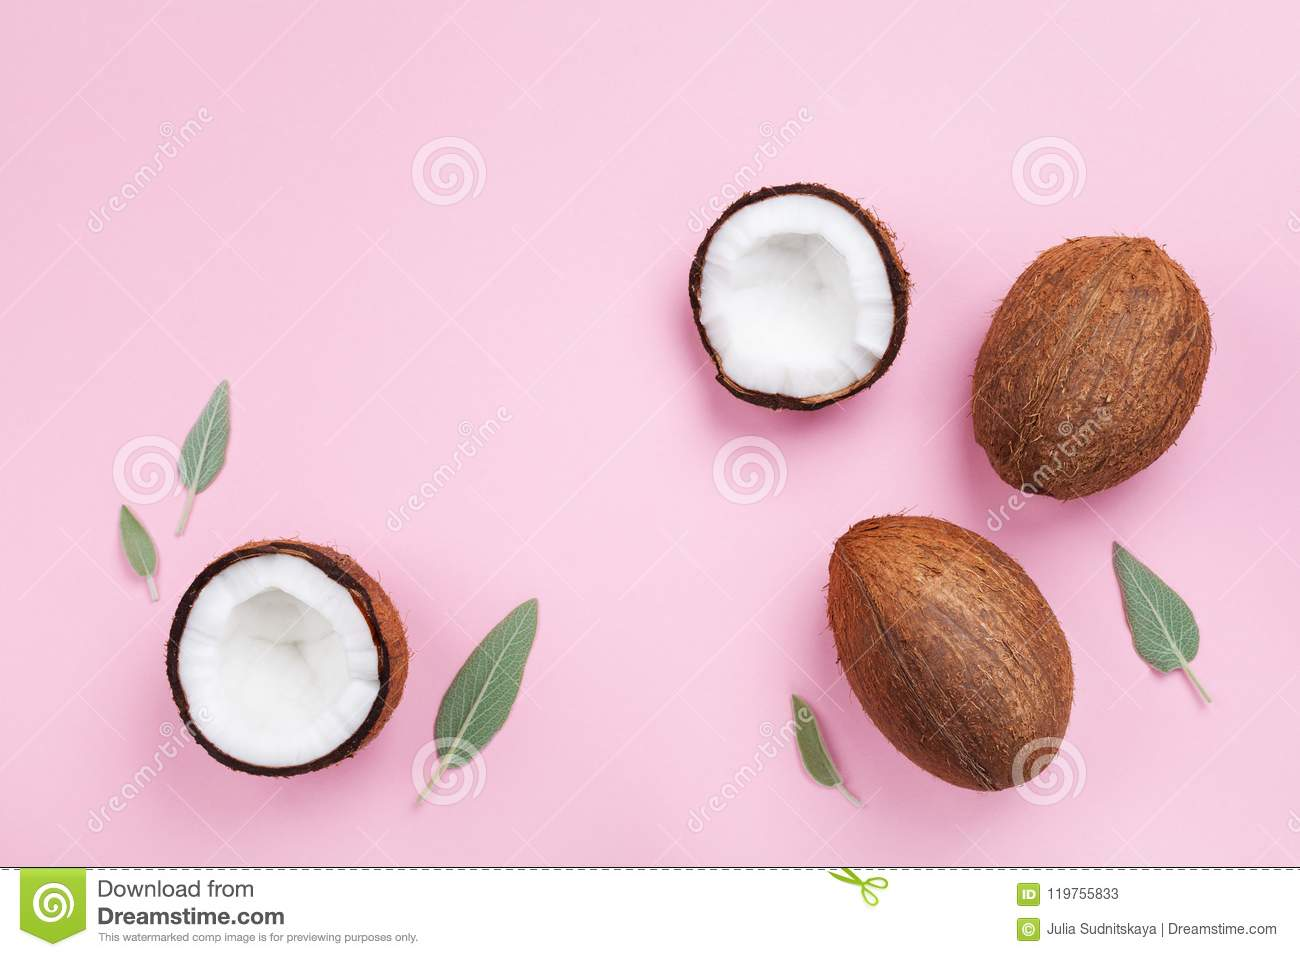 Coconut fruit whole and half on pink pastel background top view. Flat lay style.